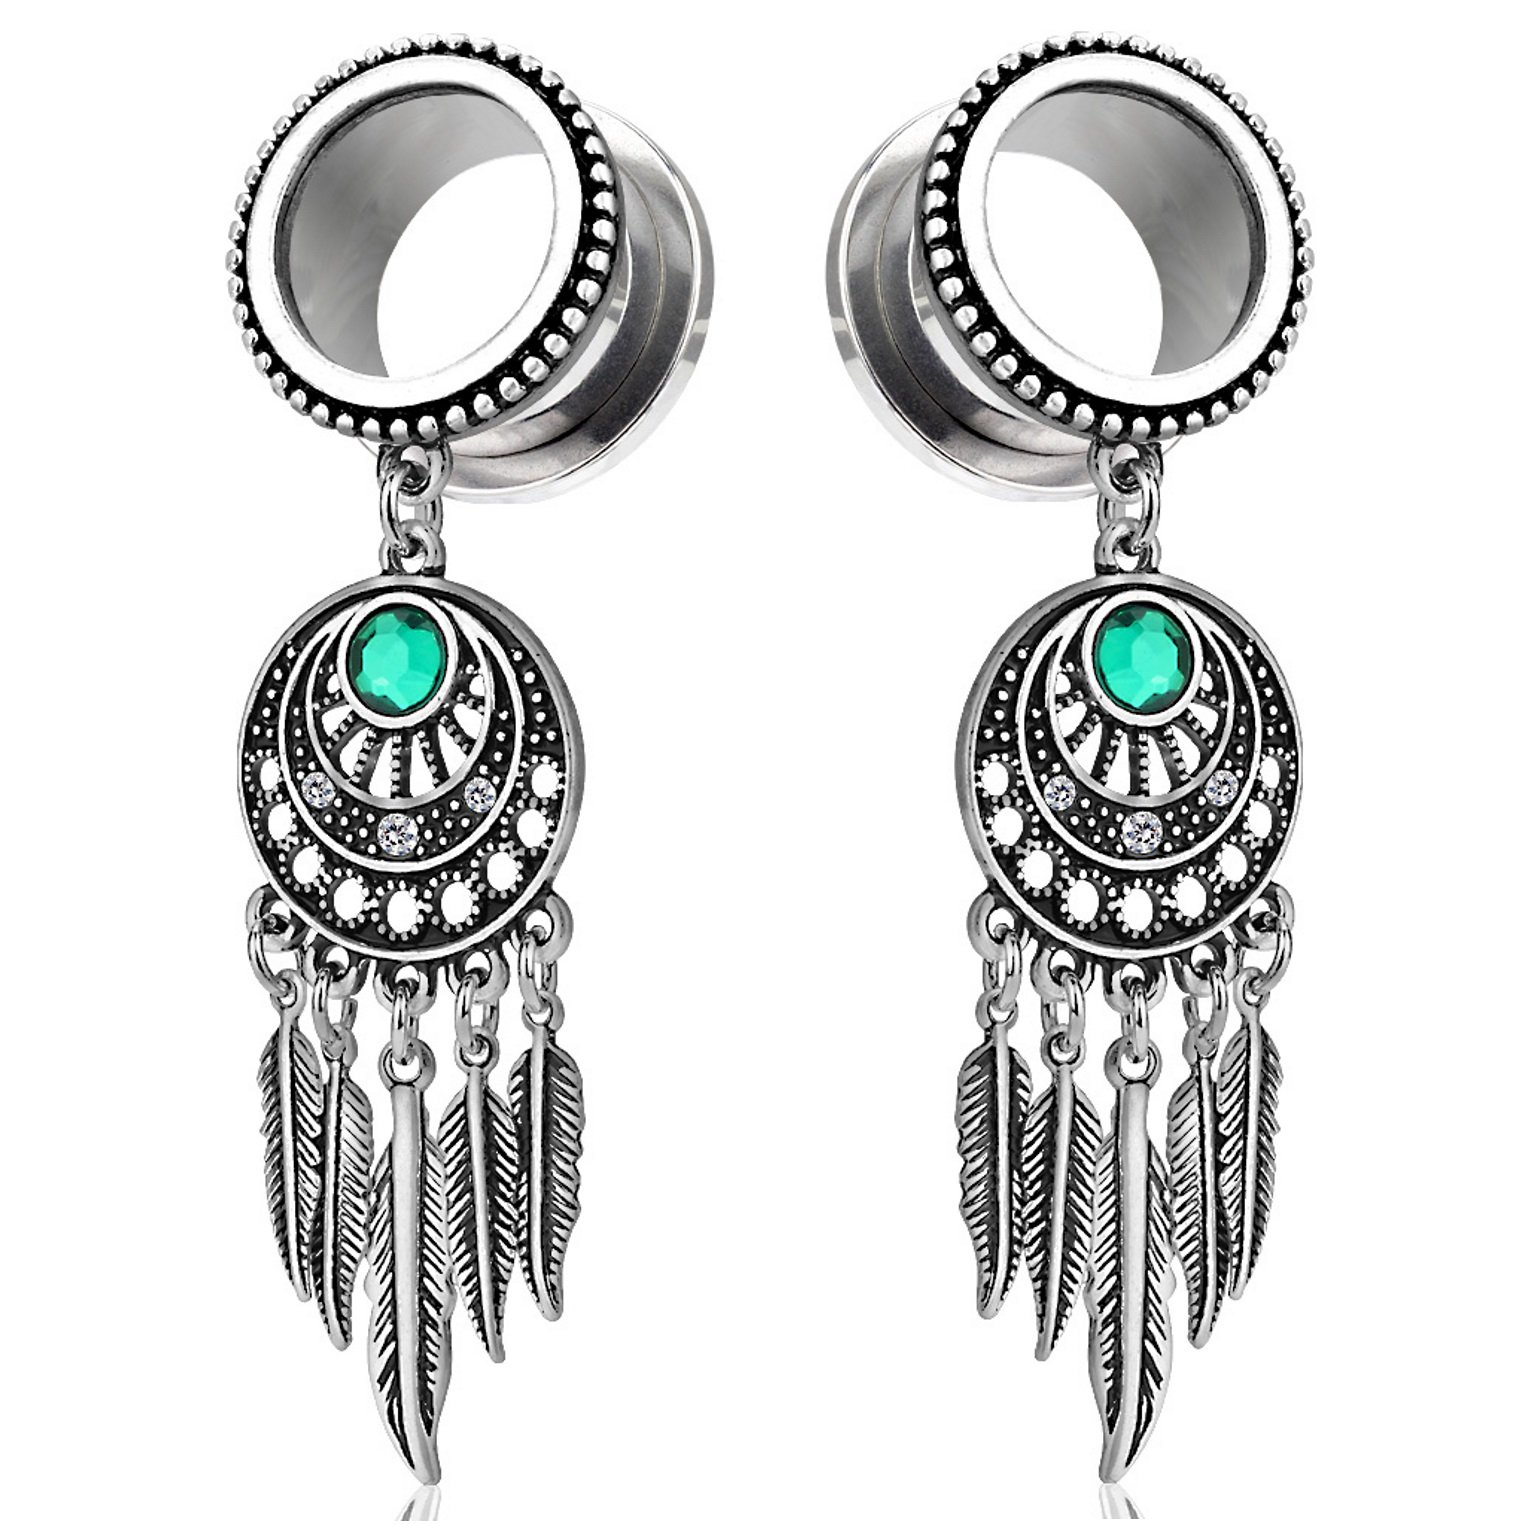 Pair of Tribal Style Dreamcatcher with Feathers Dangle Ear Plugs Tunnels Steel/Brass (1/2 Inch (12mm))